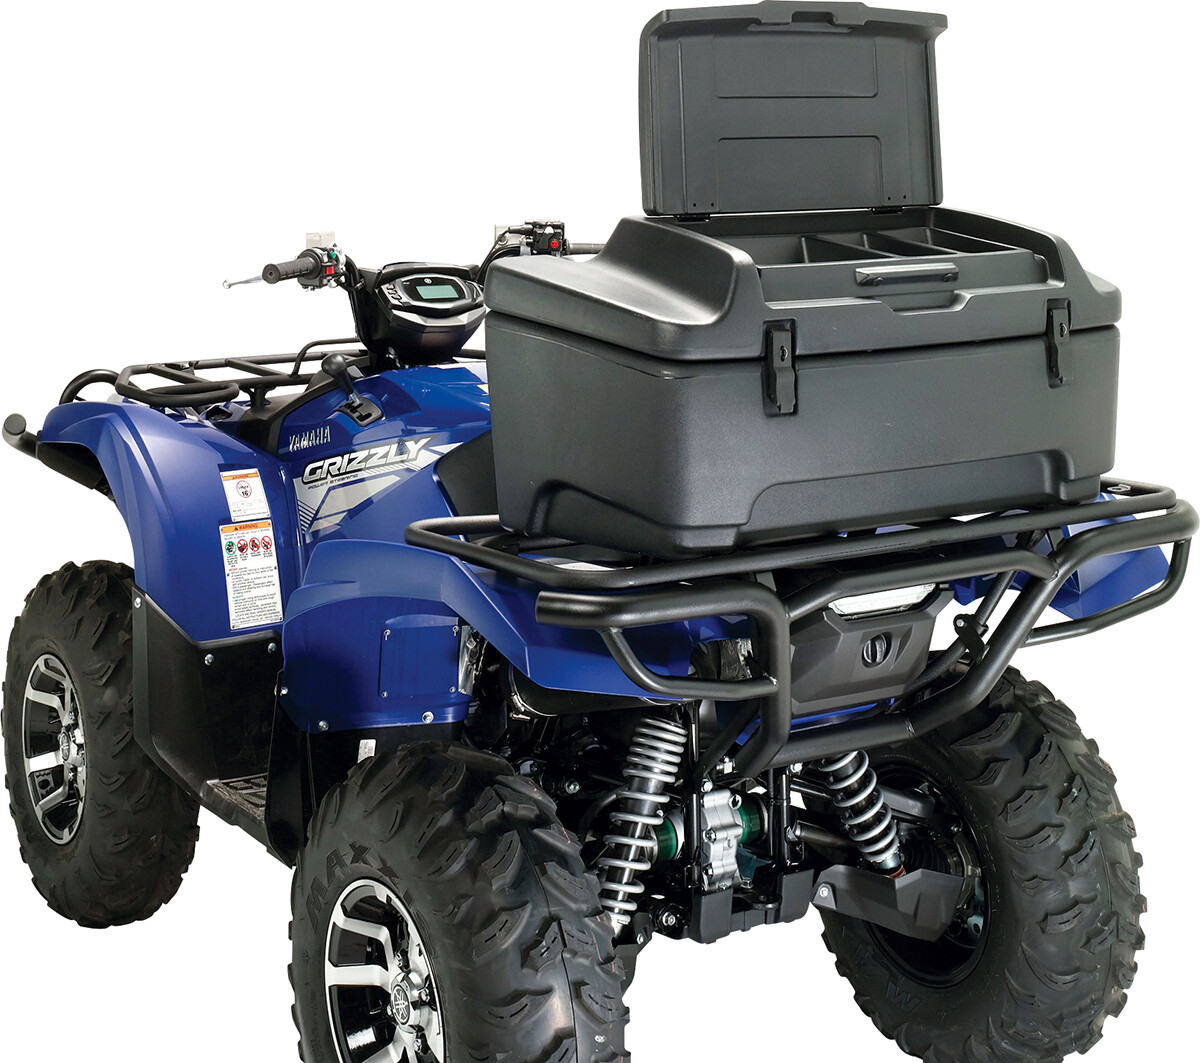 Moose ATV Two Tier Rear Storage Universal Trunk Box (3505-0208)